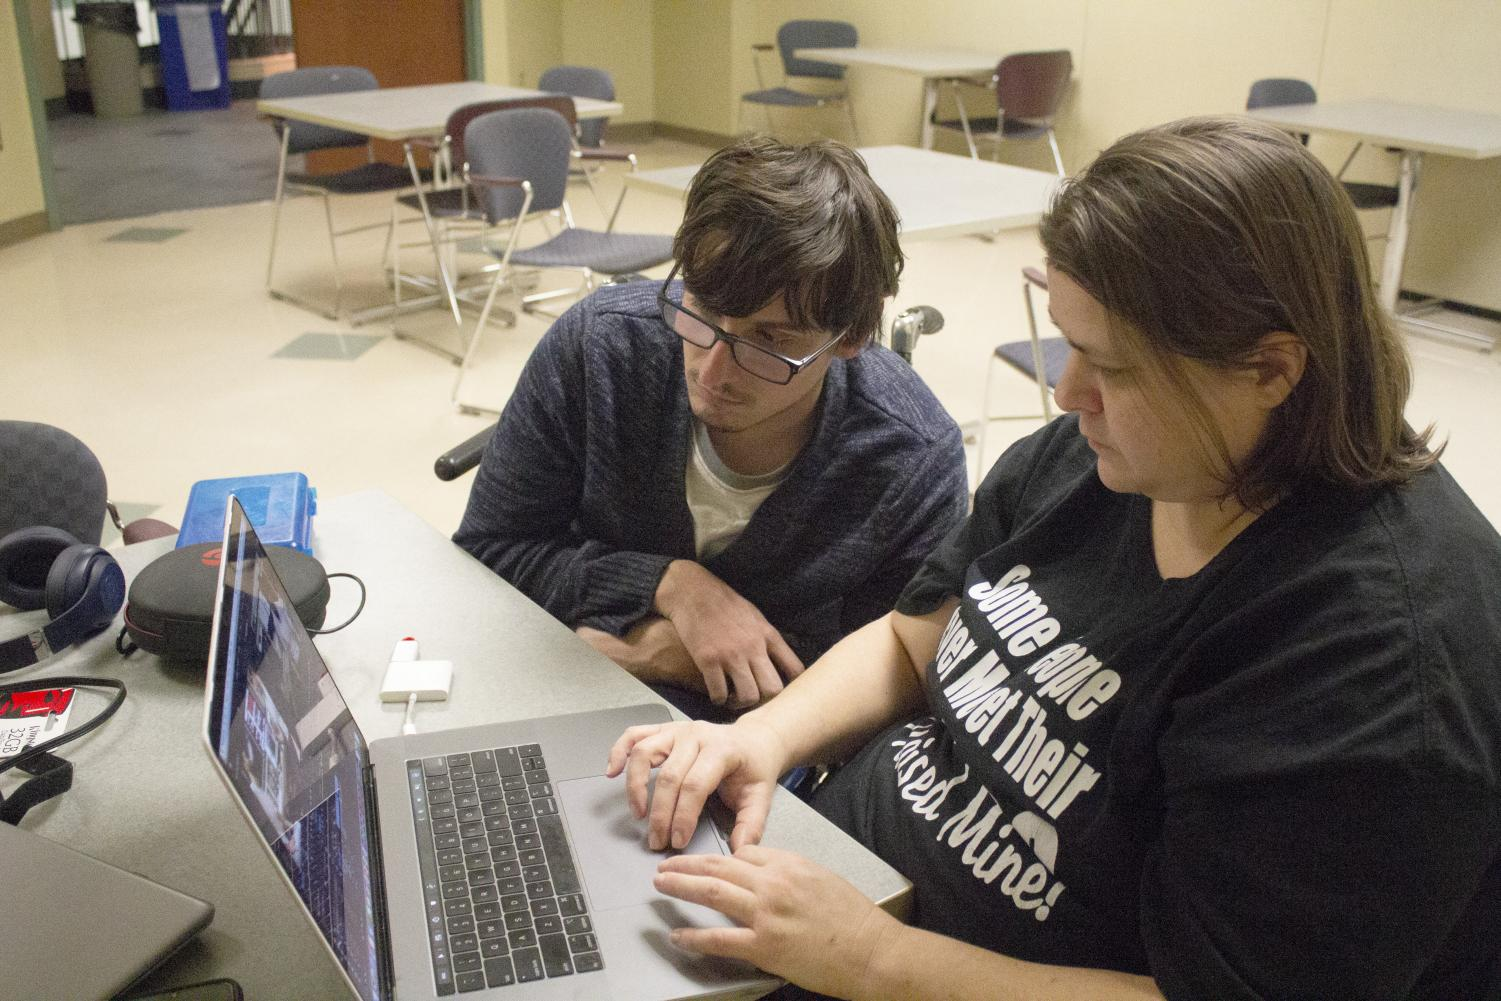 Mary Ellen Greenburg, a senior television film production major, and Timothy Russell, a television film production major, work on a video project on Adobe Premiere for their Genres class Wednesday night.